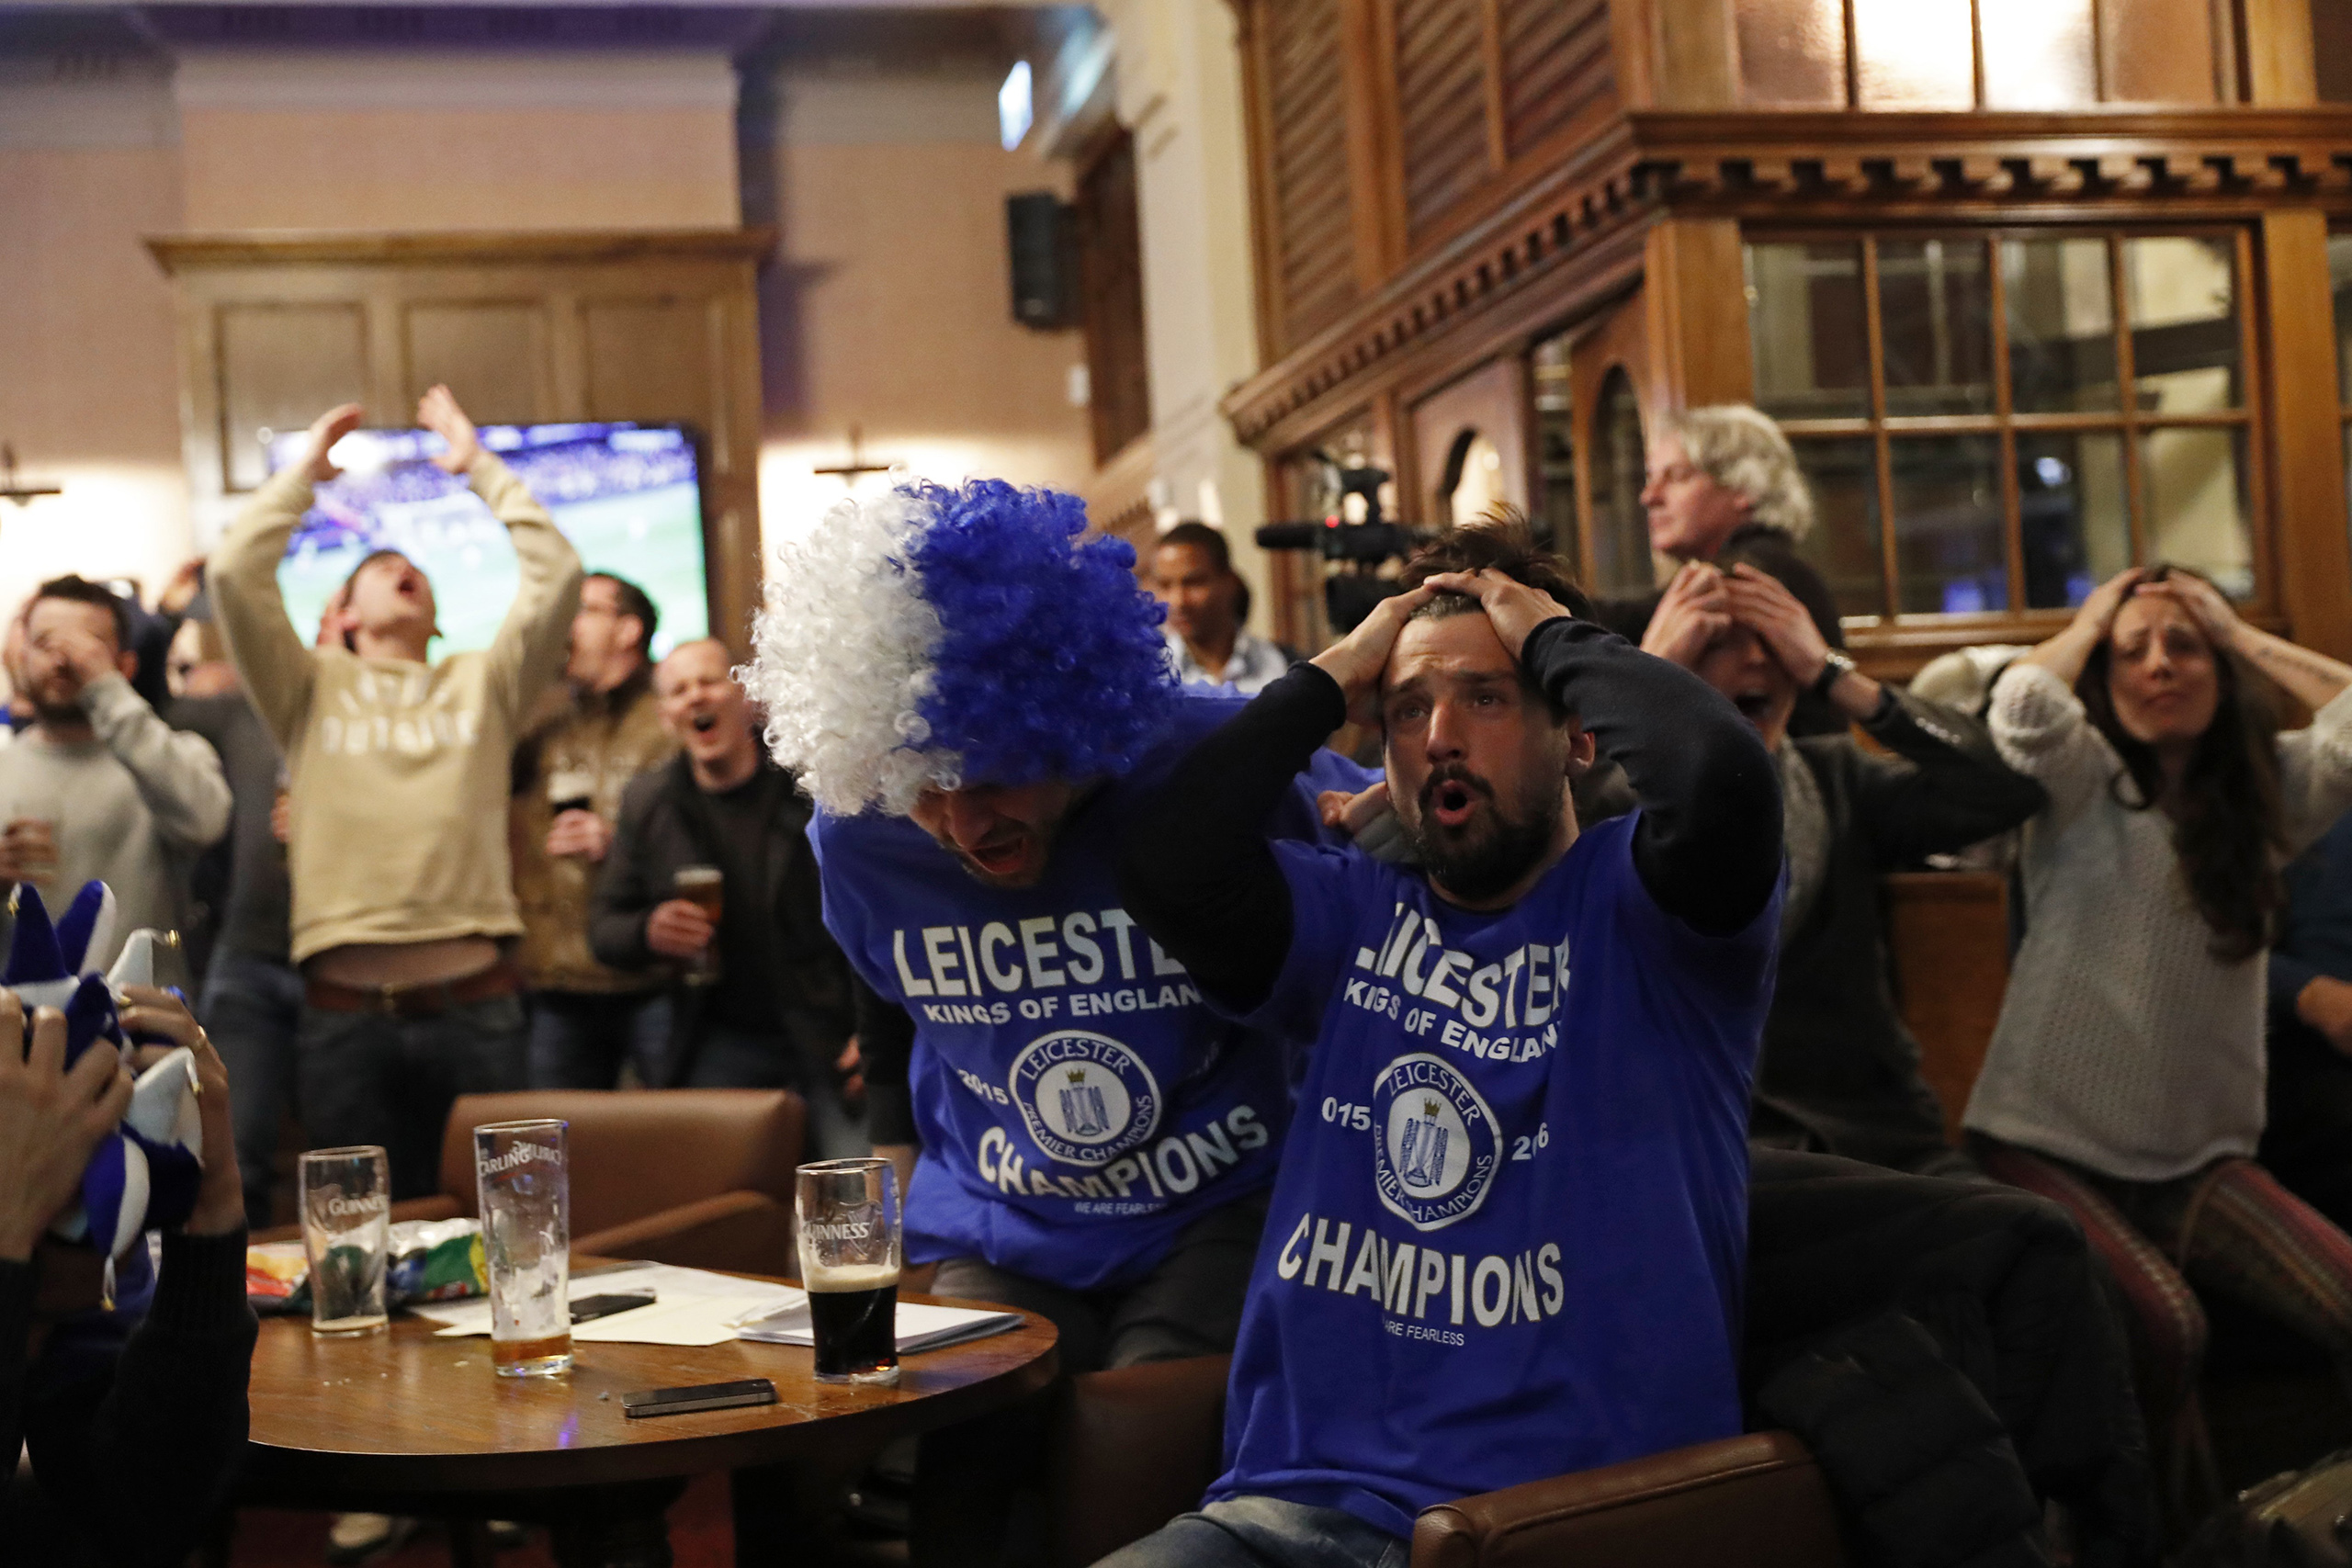 Leicester City fans watch the English Premier League match between Chelsea and Tottenham Hotspur at a pub in Leicester, eastern England, May 2, 2016.